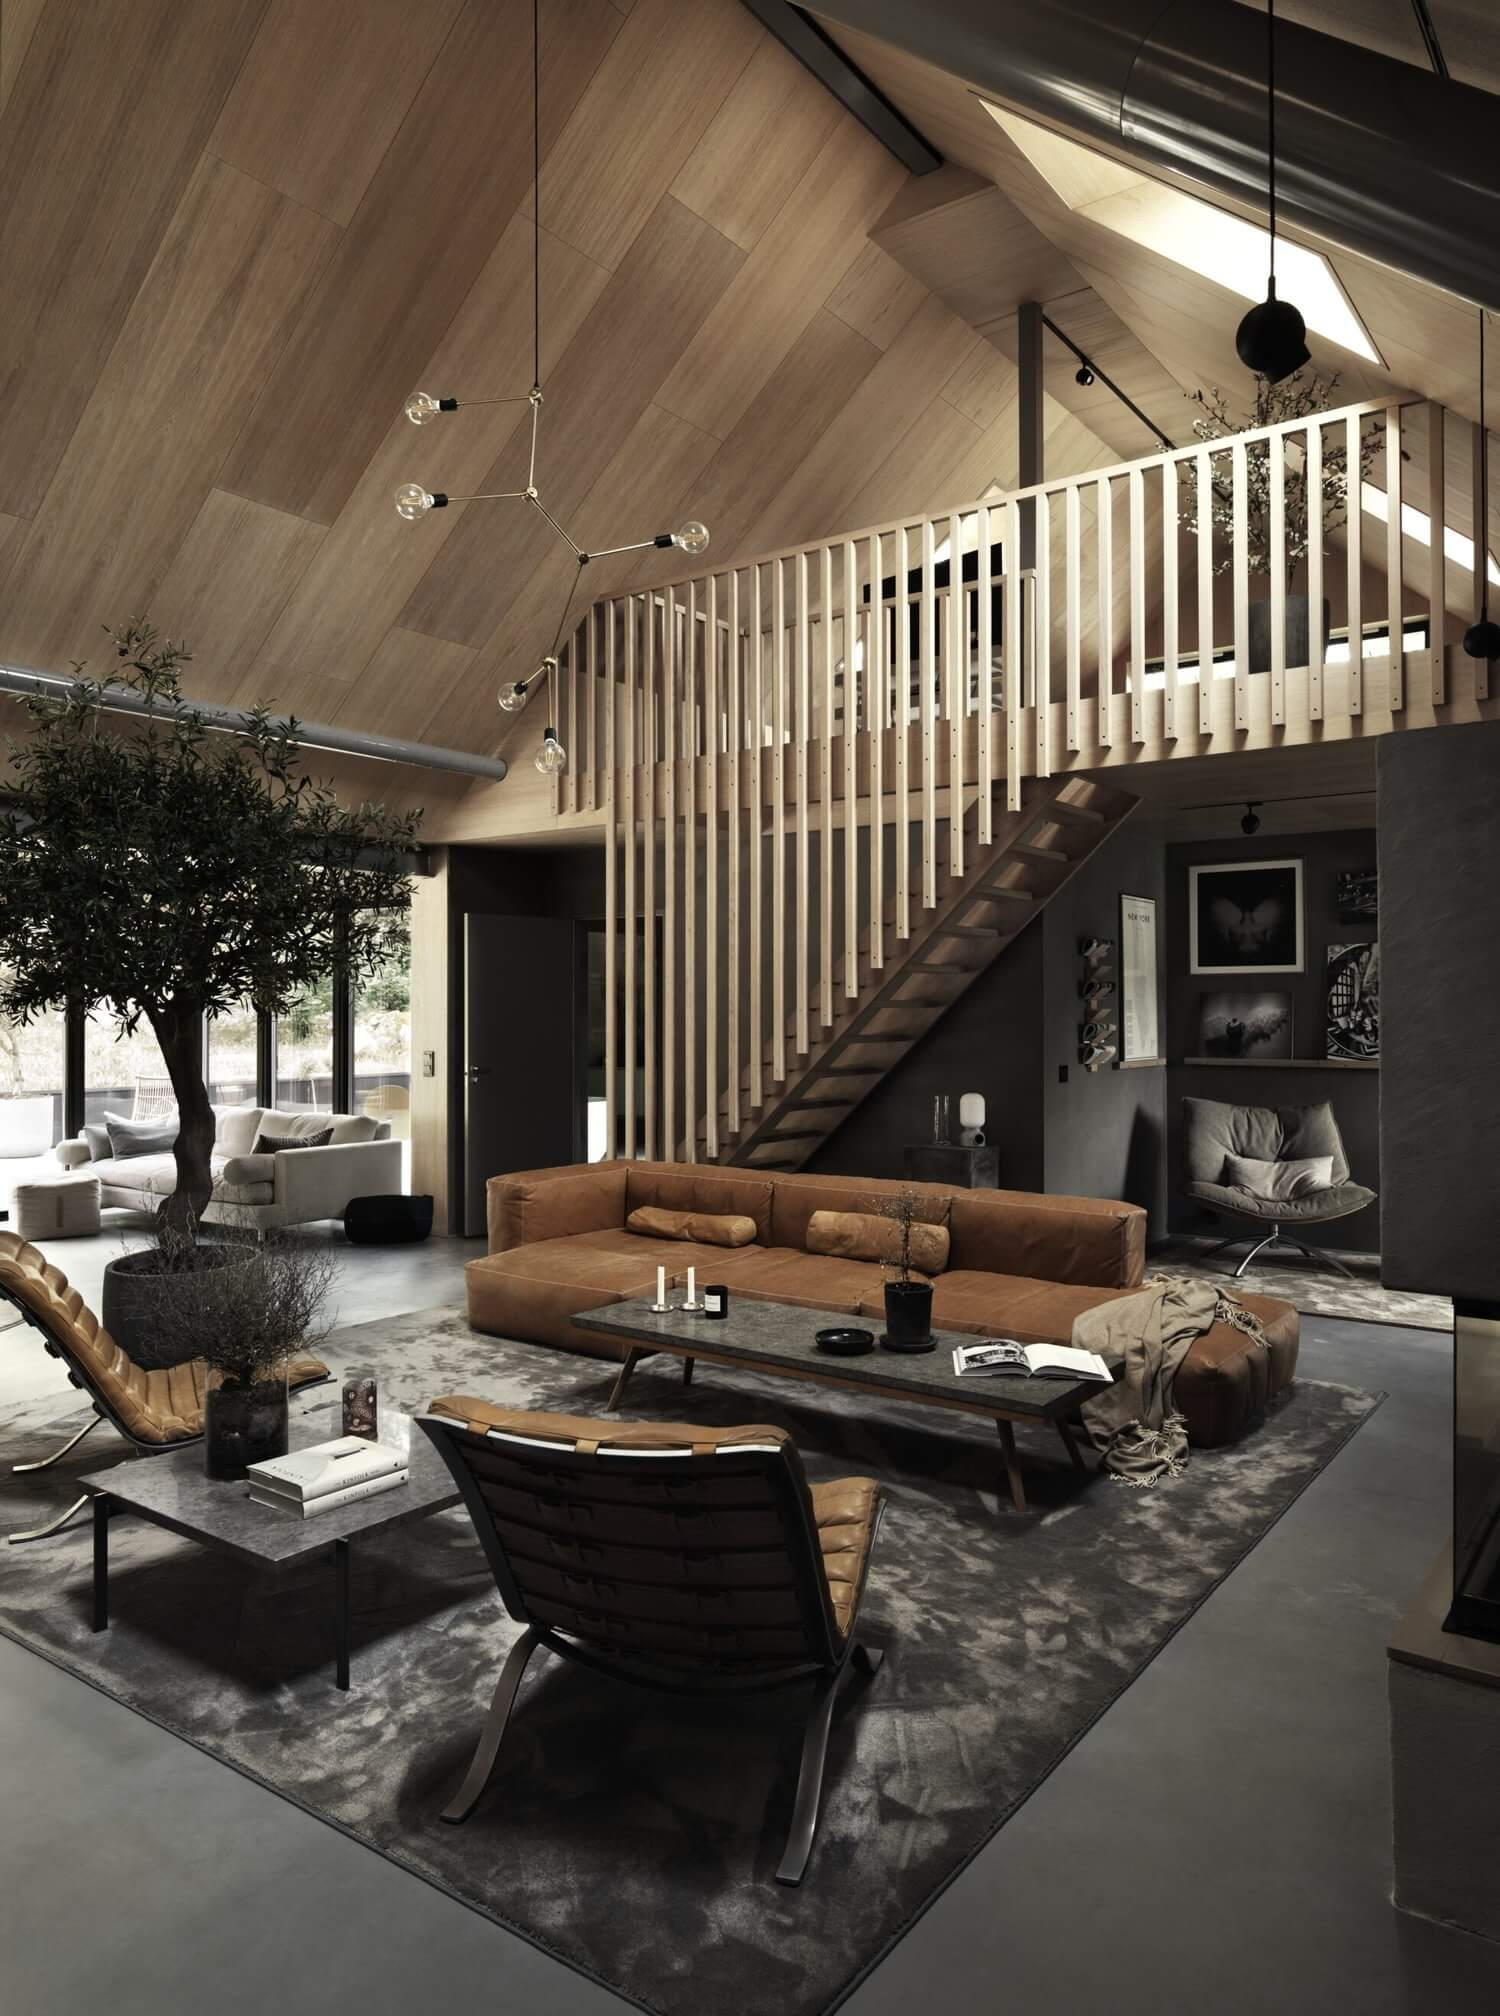 A Sustainable Open-Plan Home In The Swedish Countryside